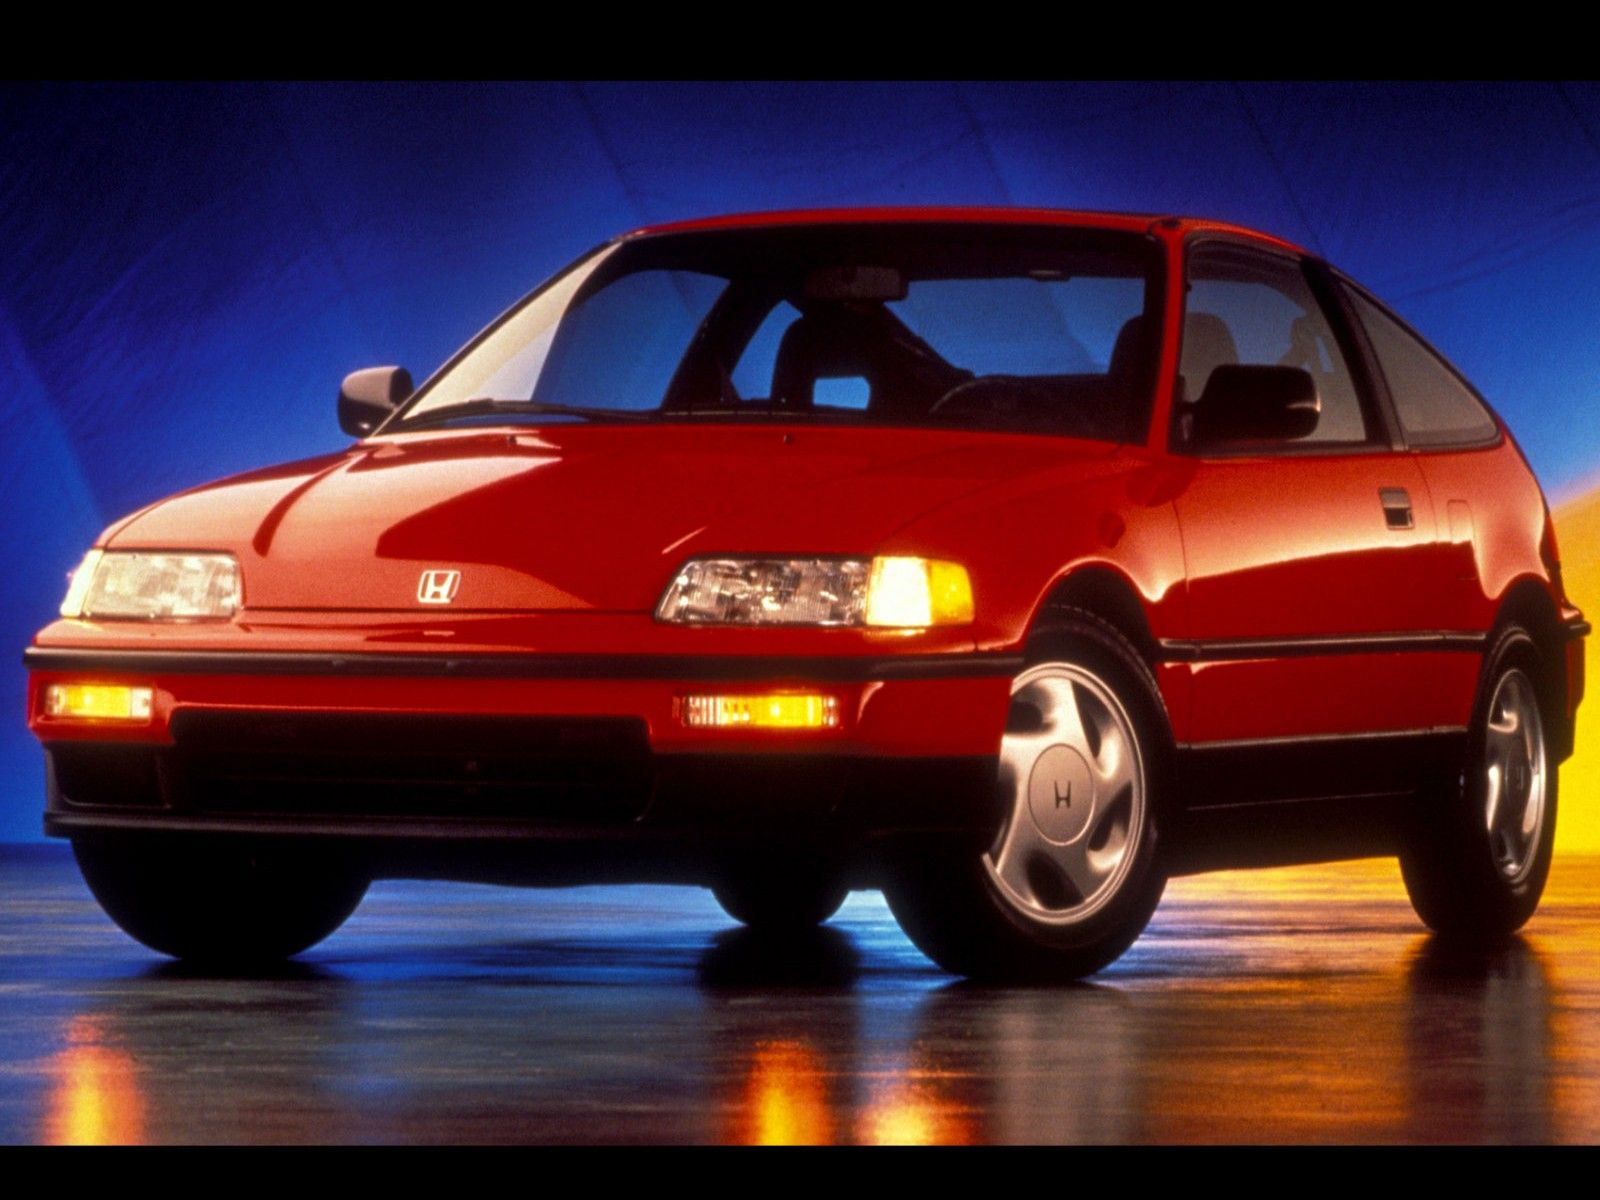 1986 honda civic crx si tom and i were given this car by best friend john kucich his dog had eaten interior cars i have owned pinterest honda civic